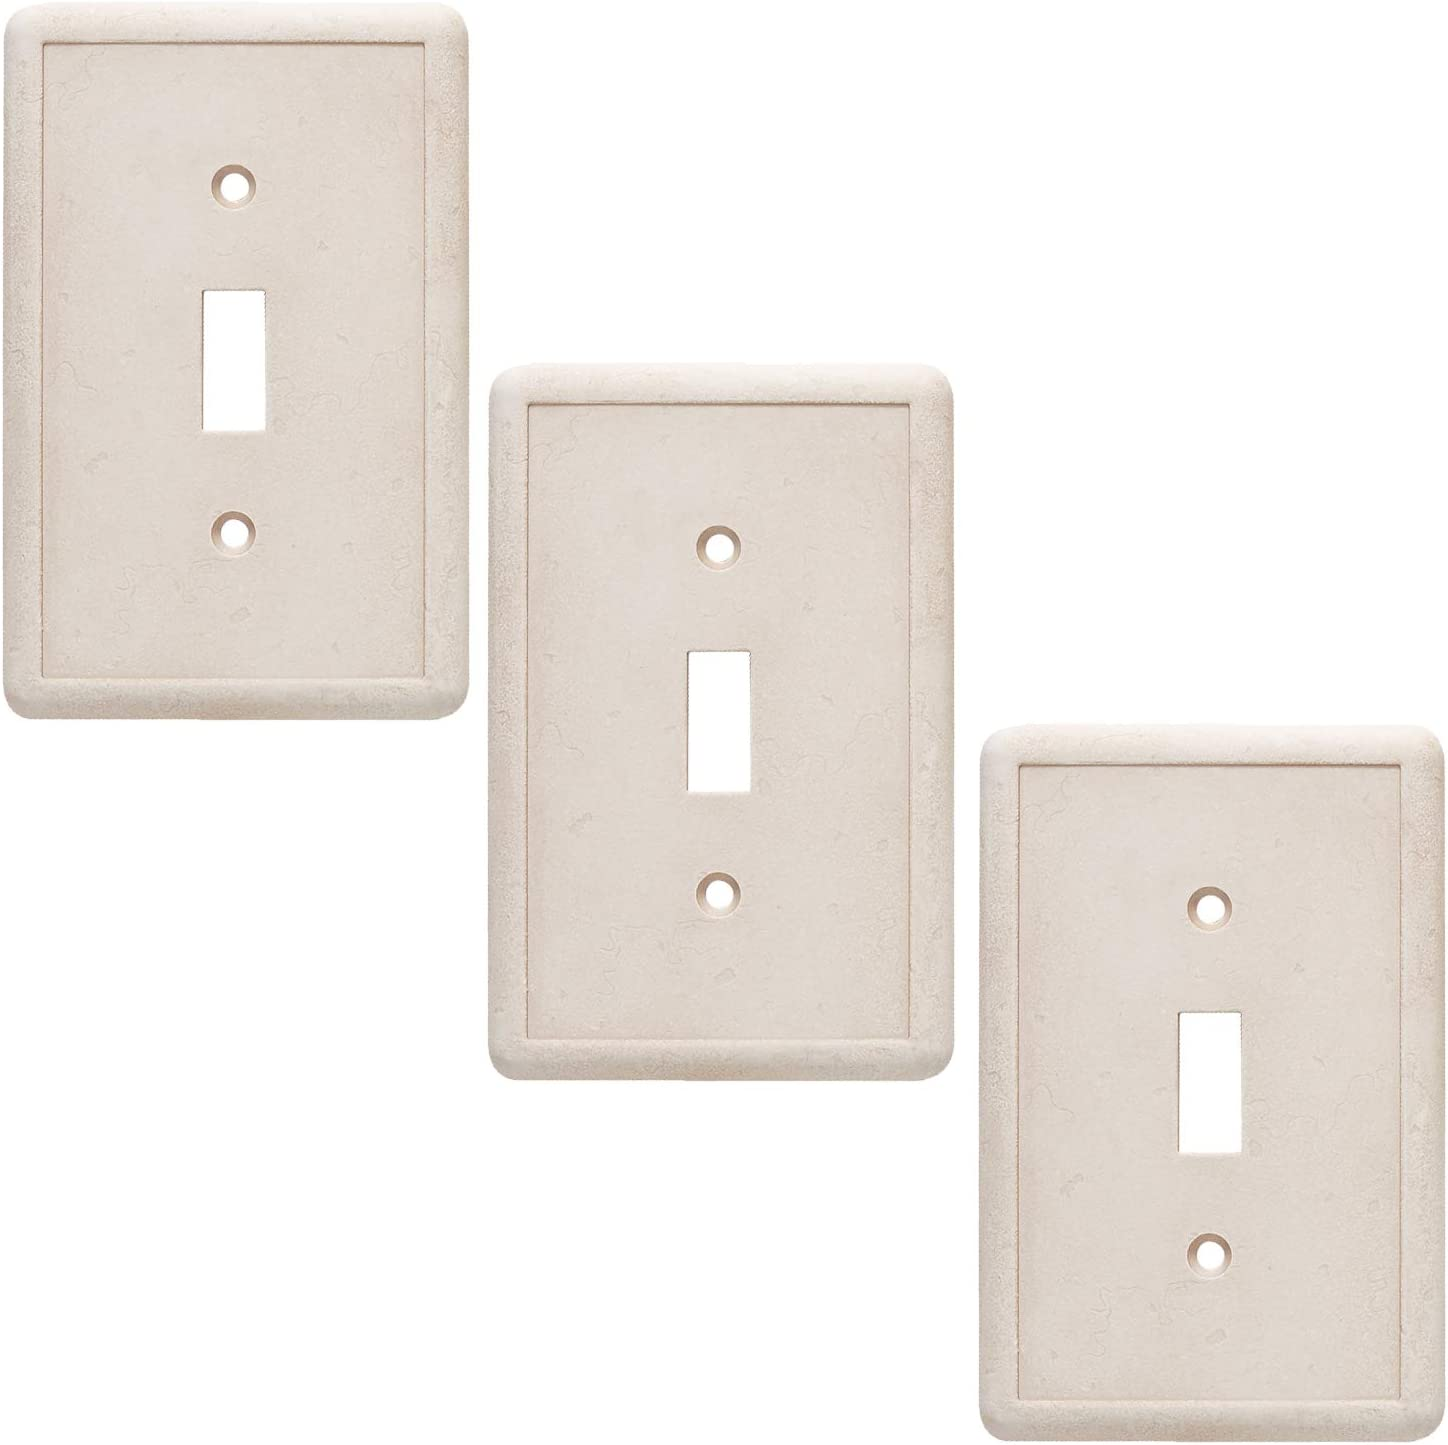 Single Toggle 3 Pack - Ivory Light Switch Cover Cast Stone Textured Decorative Outlet Cover